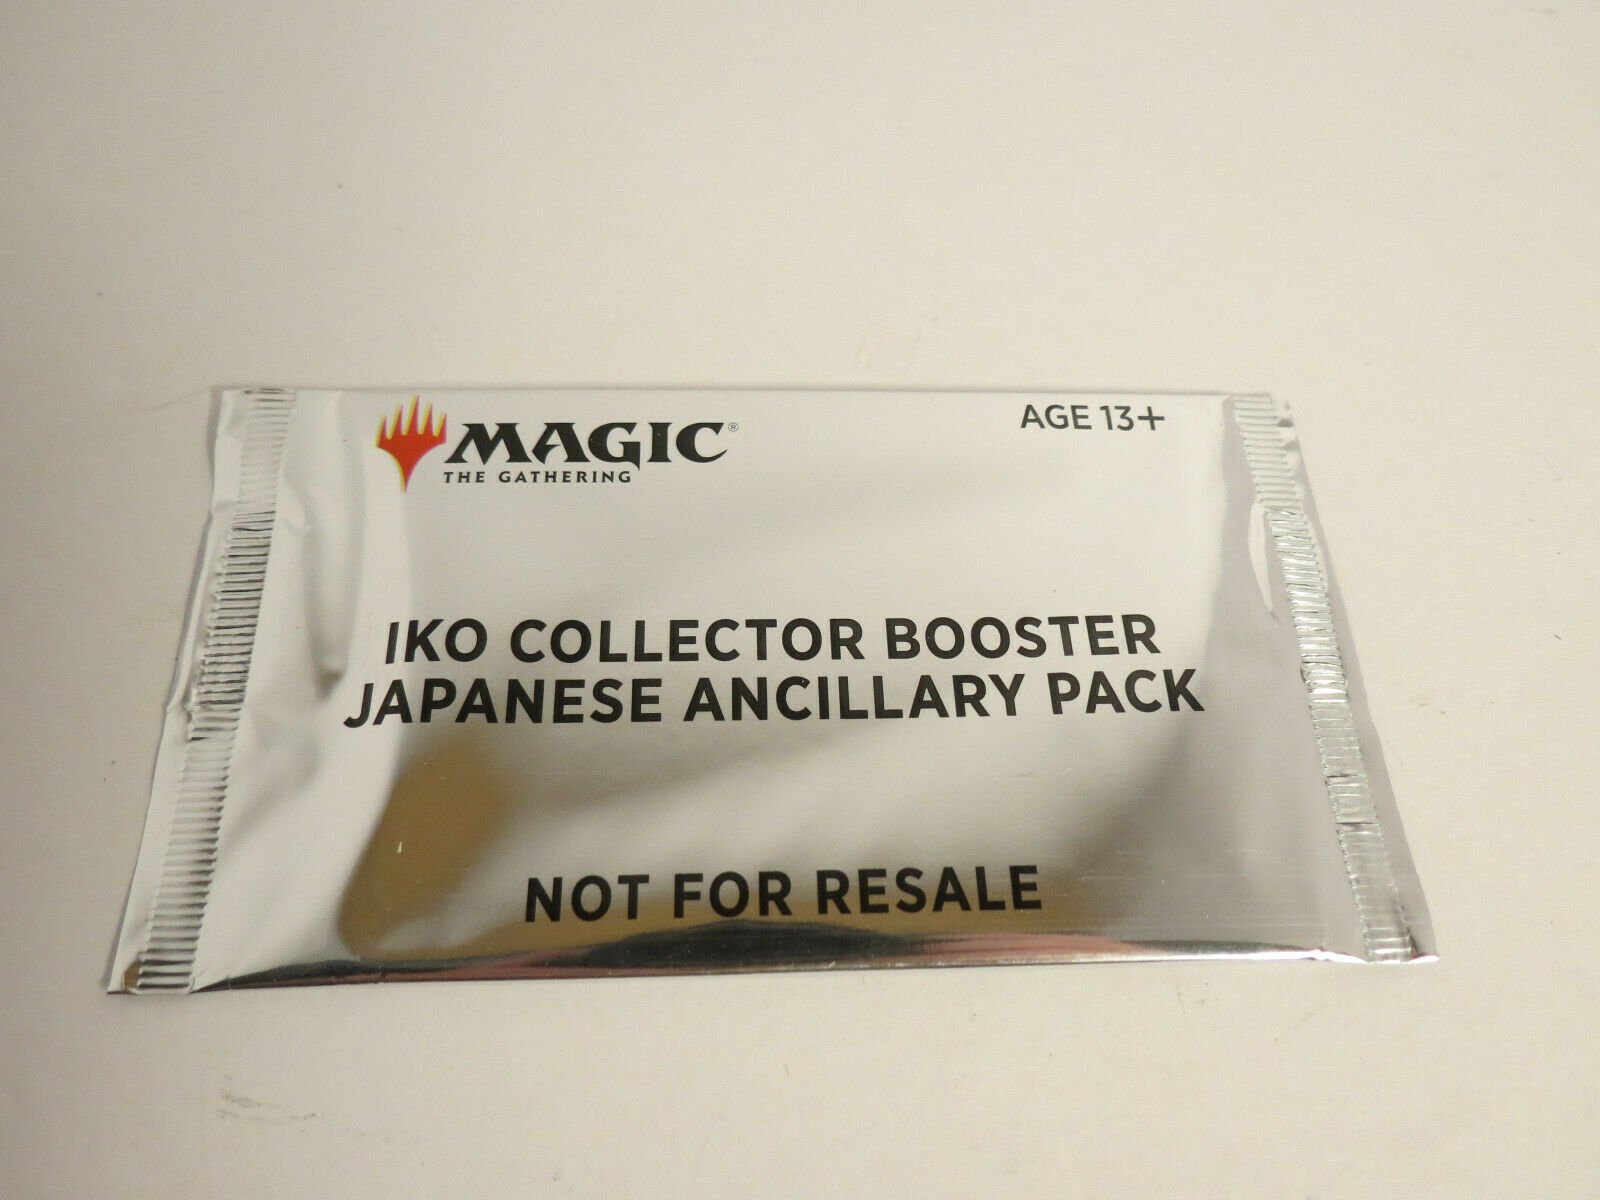 Iko Collector Booster Japanese Ancillary Pack